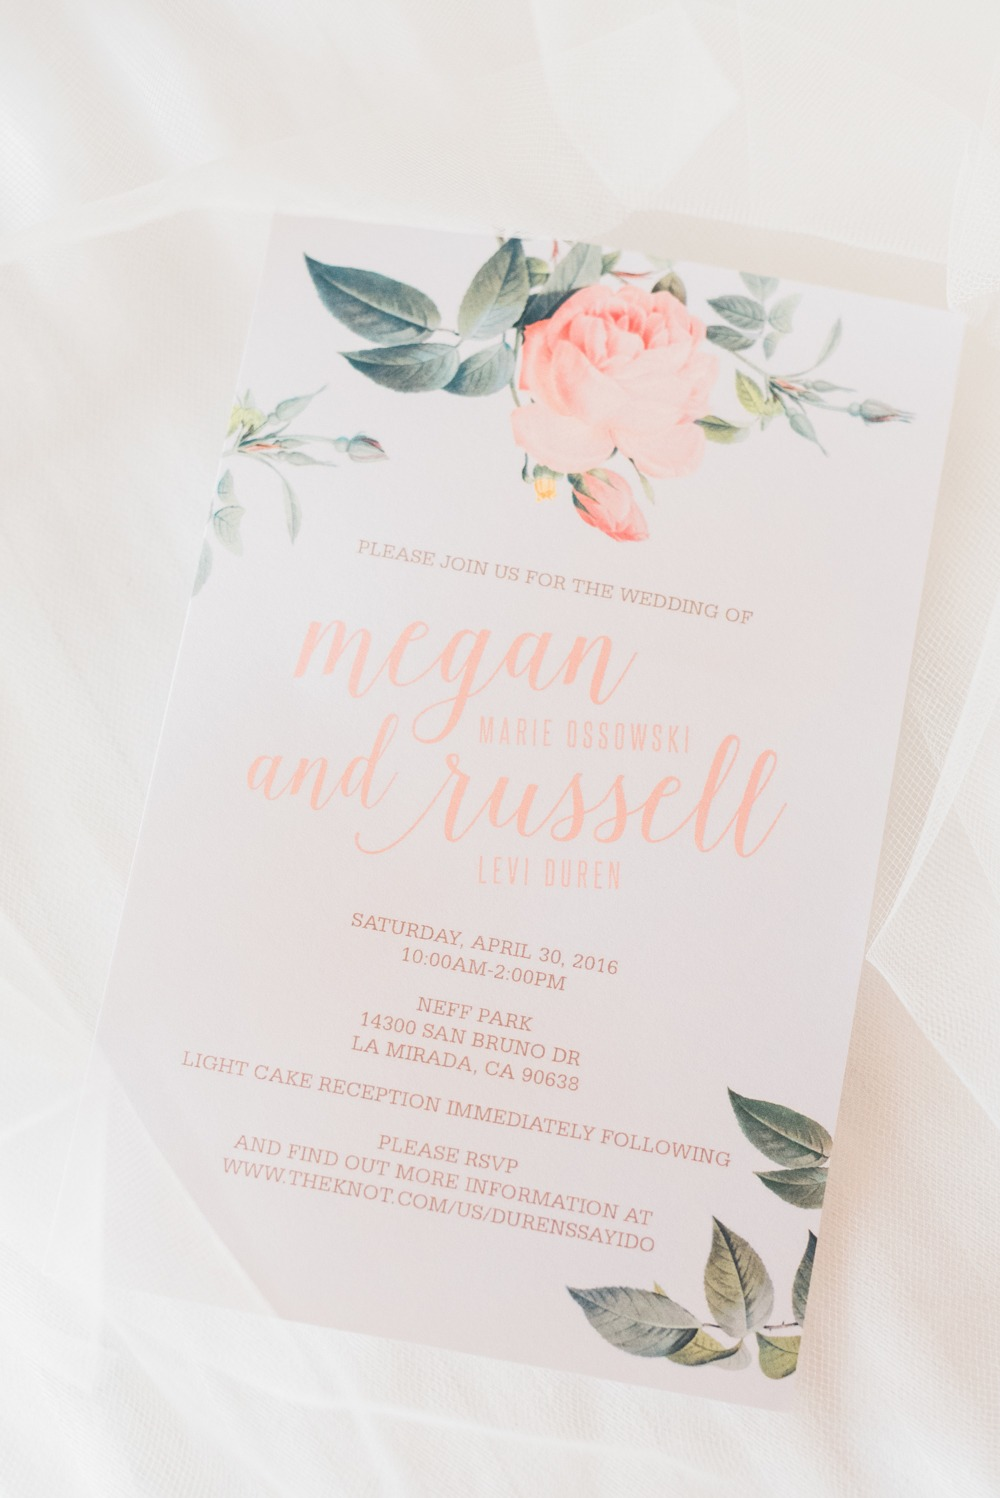 Pretty wedding paper in peach